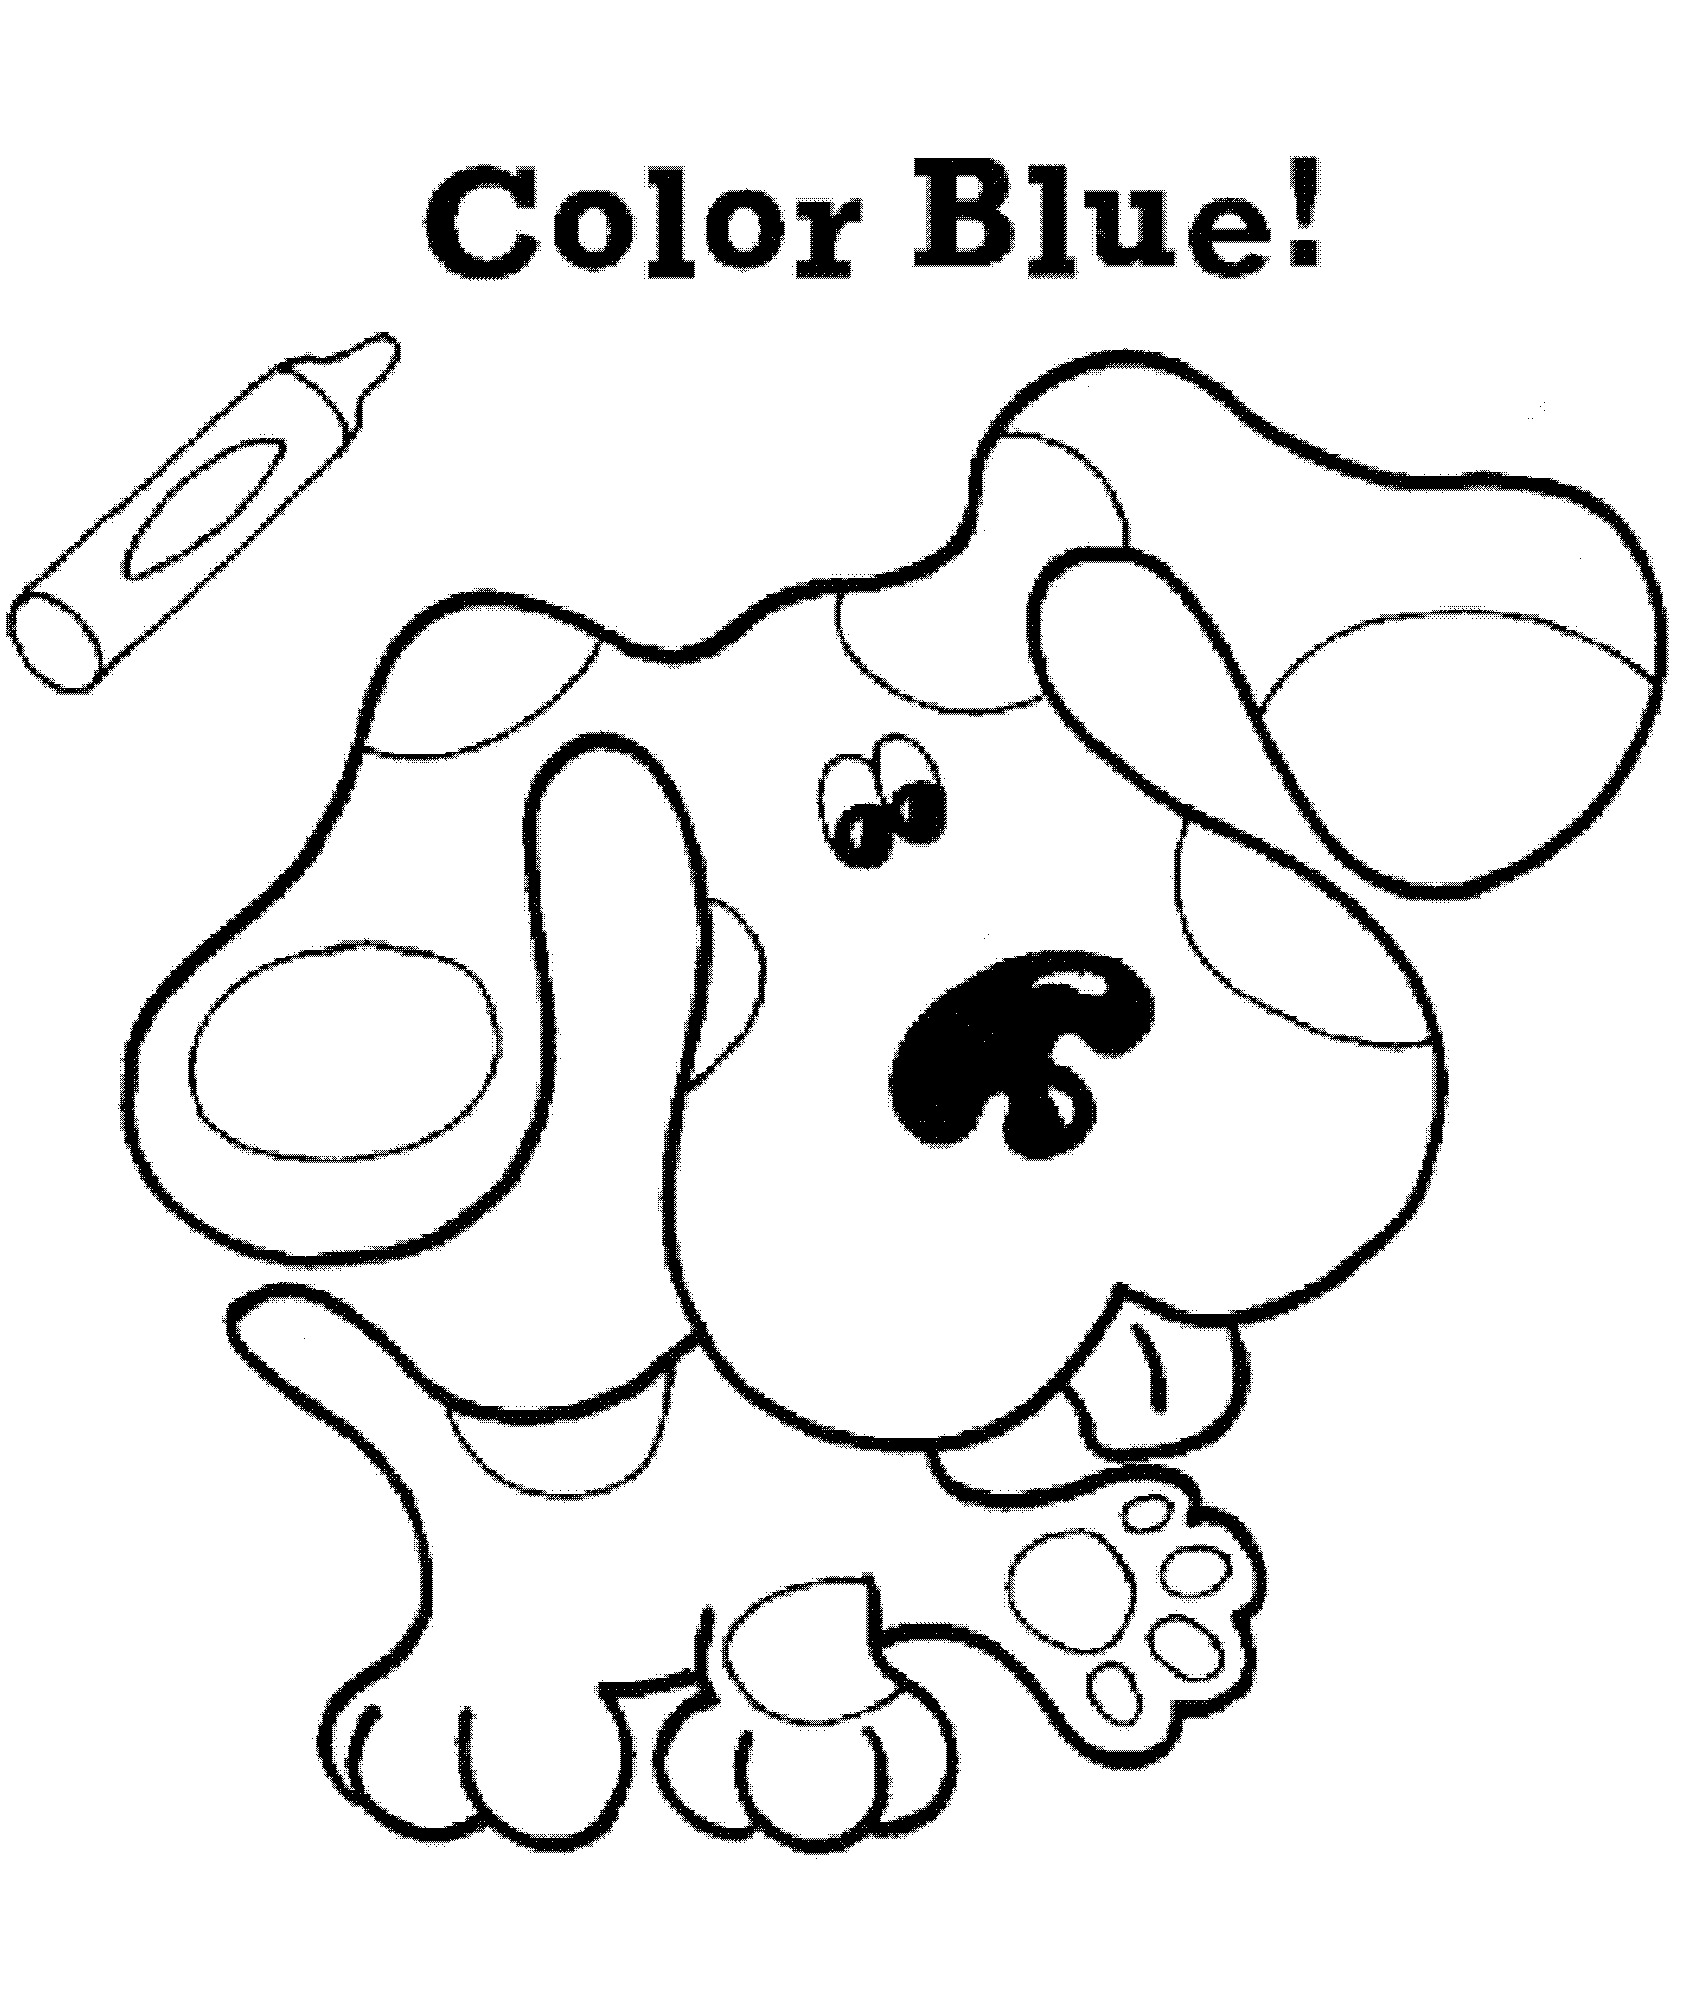 blues clues coloring pages free printable blues clues coloring pages for kids blues pages coloring clues